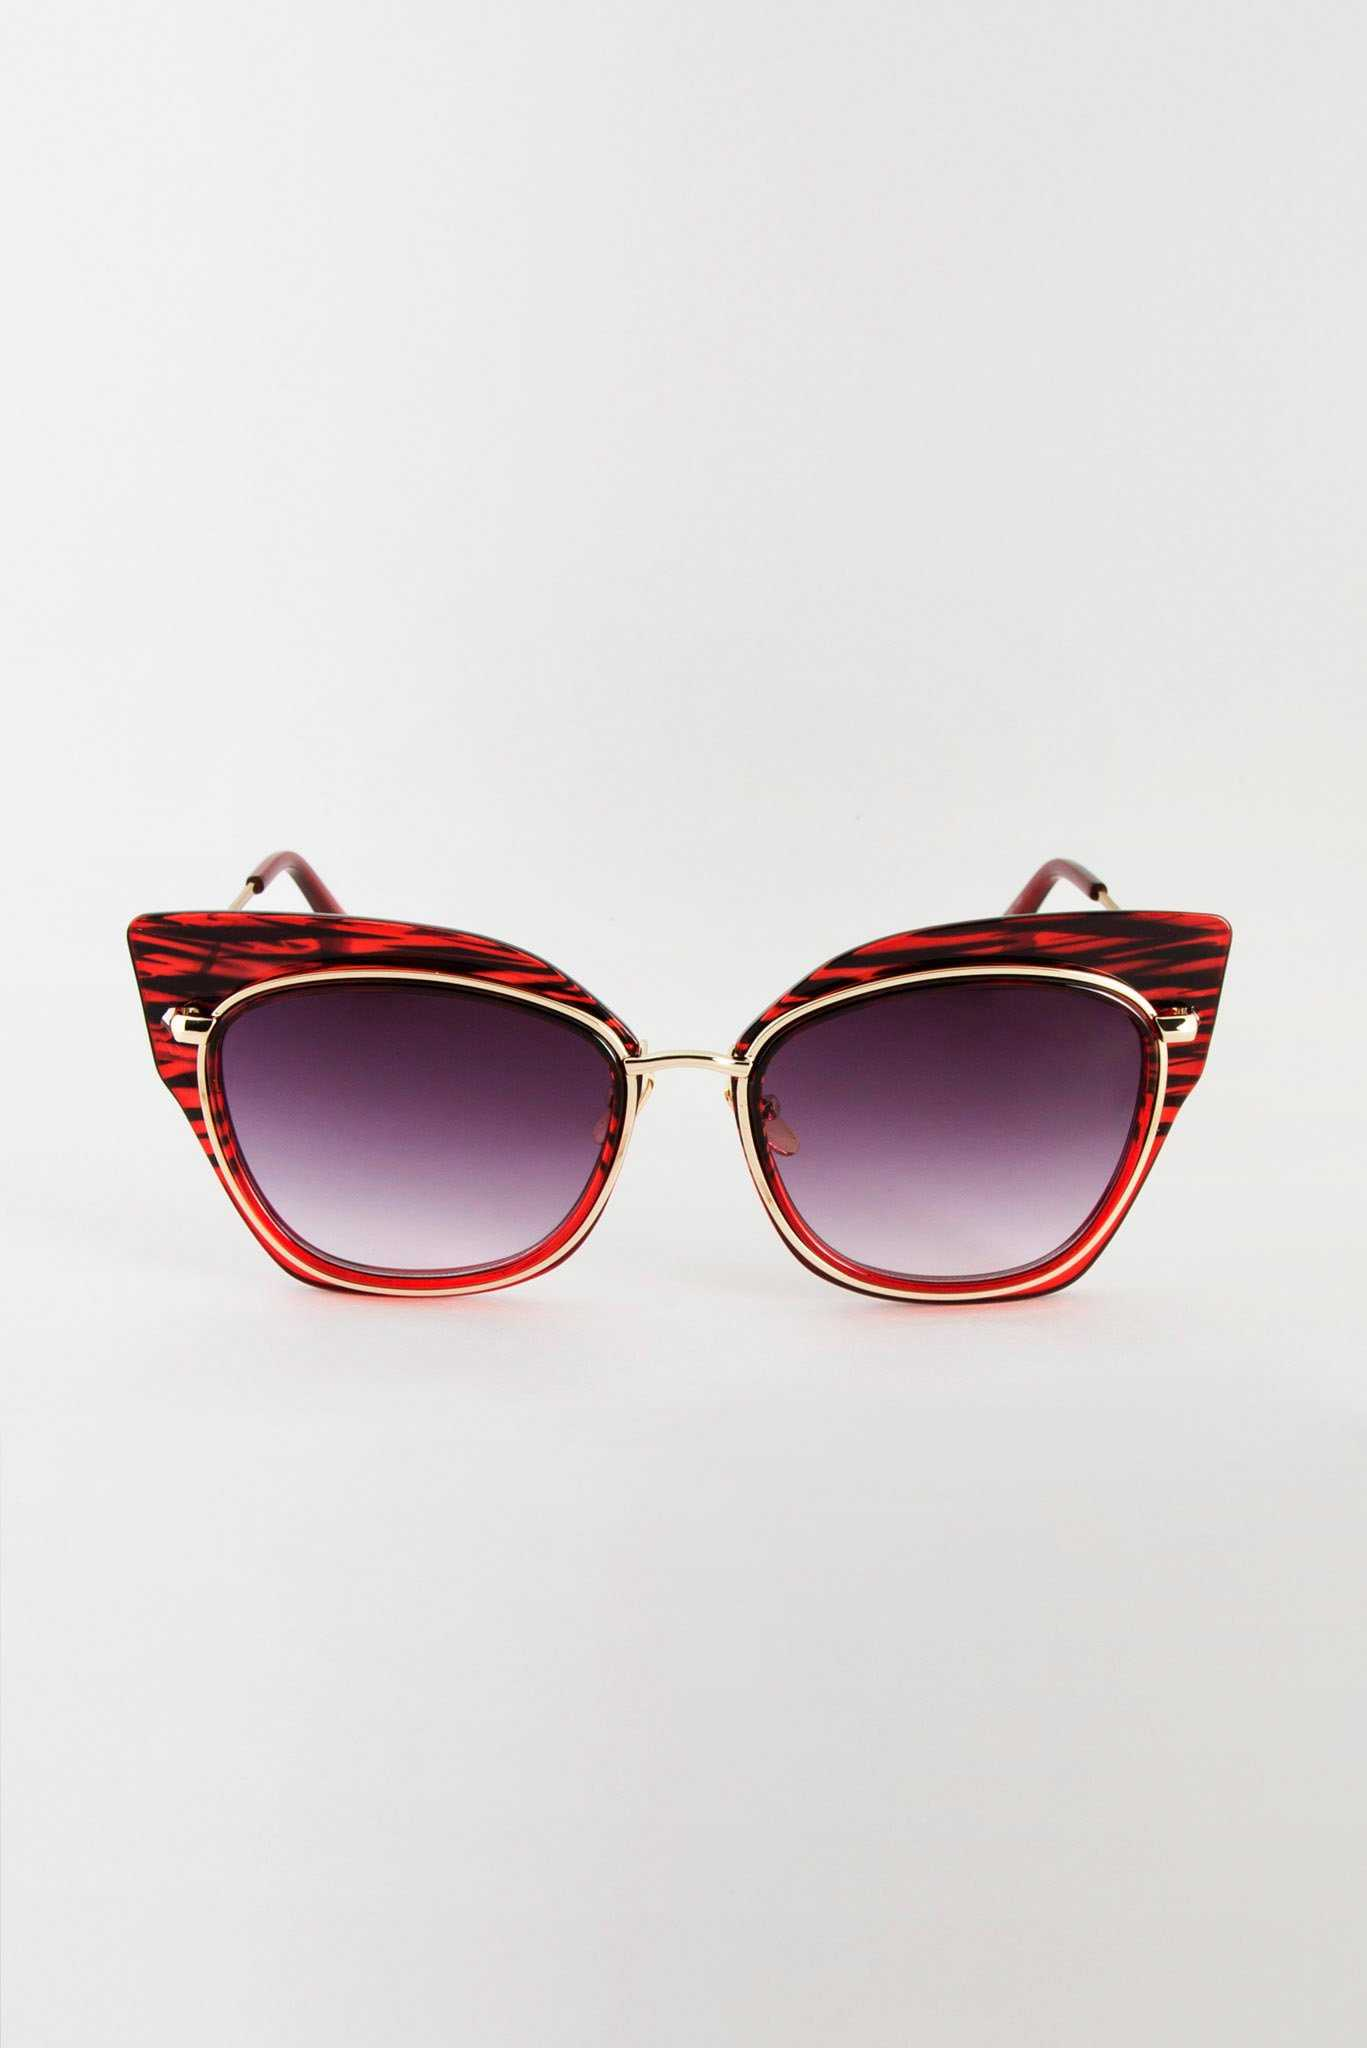 Stripped Red Frame Sunglasses | Raw Orange